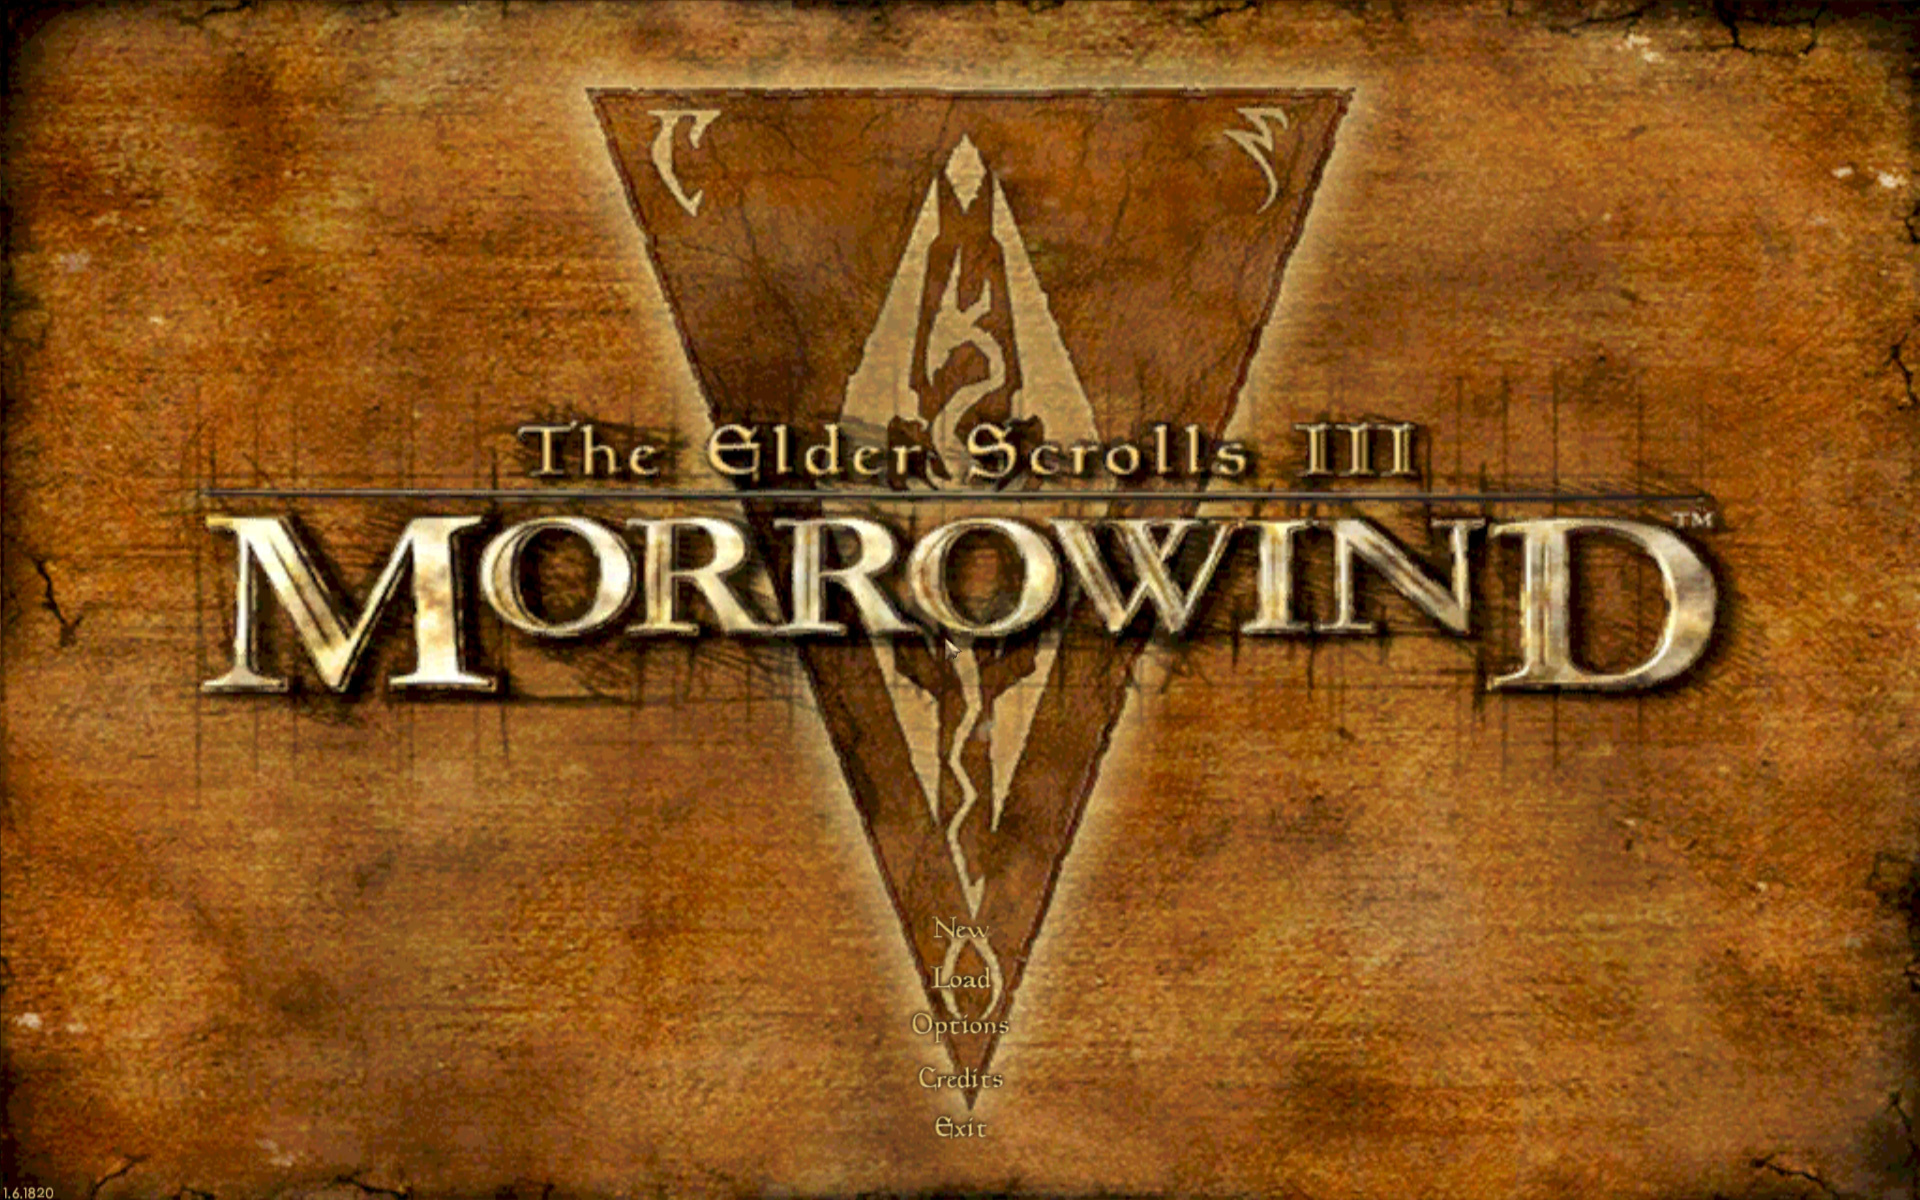 Morrowind is free, today only, for The Elder Scrolls' 25th anniversary